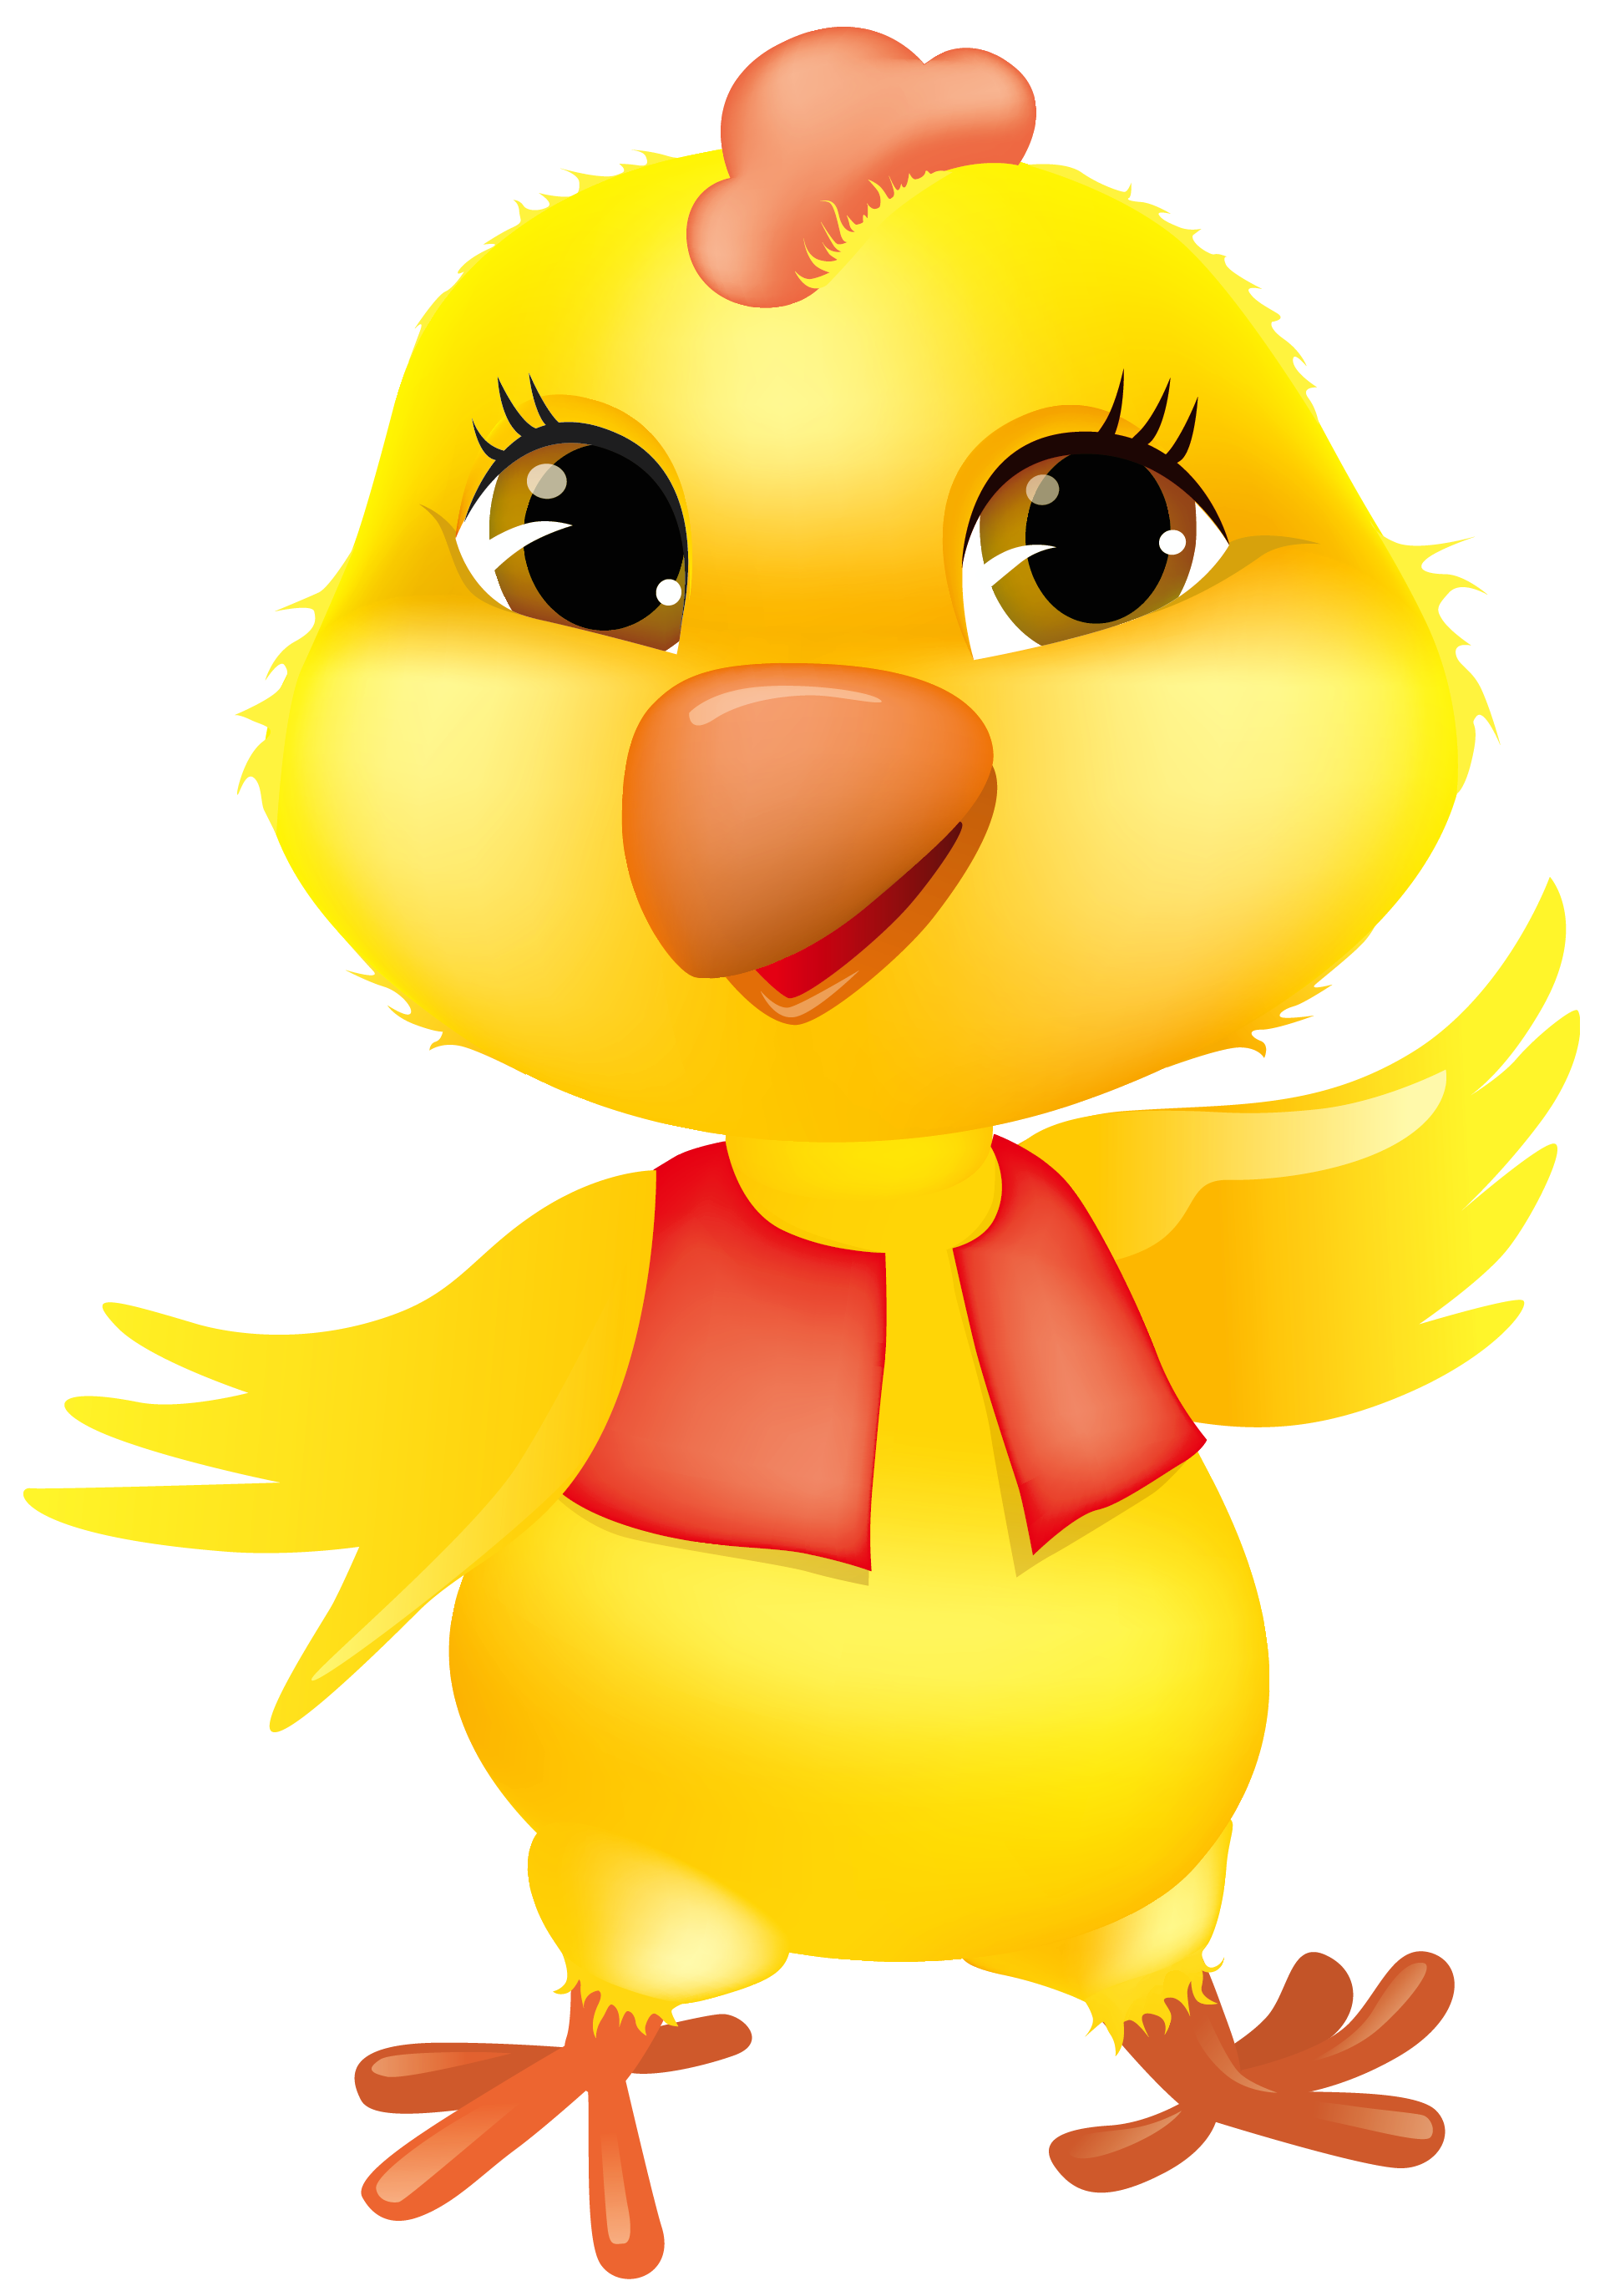 Free Chick Cliparts, Download Free Clip Art, Free Clip Art on.